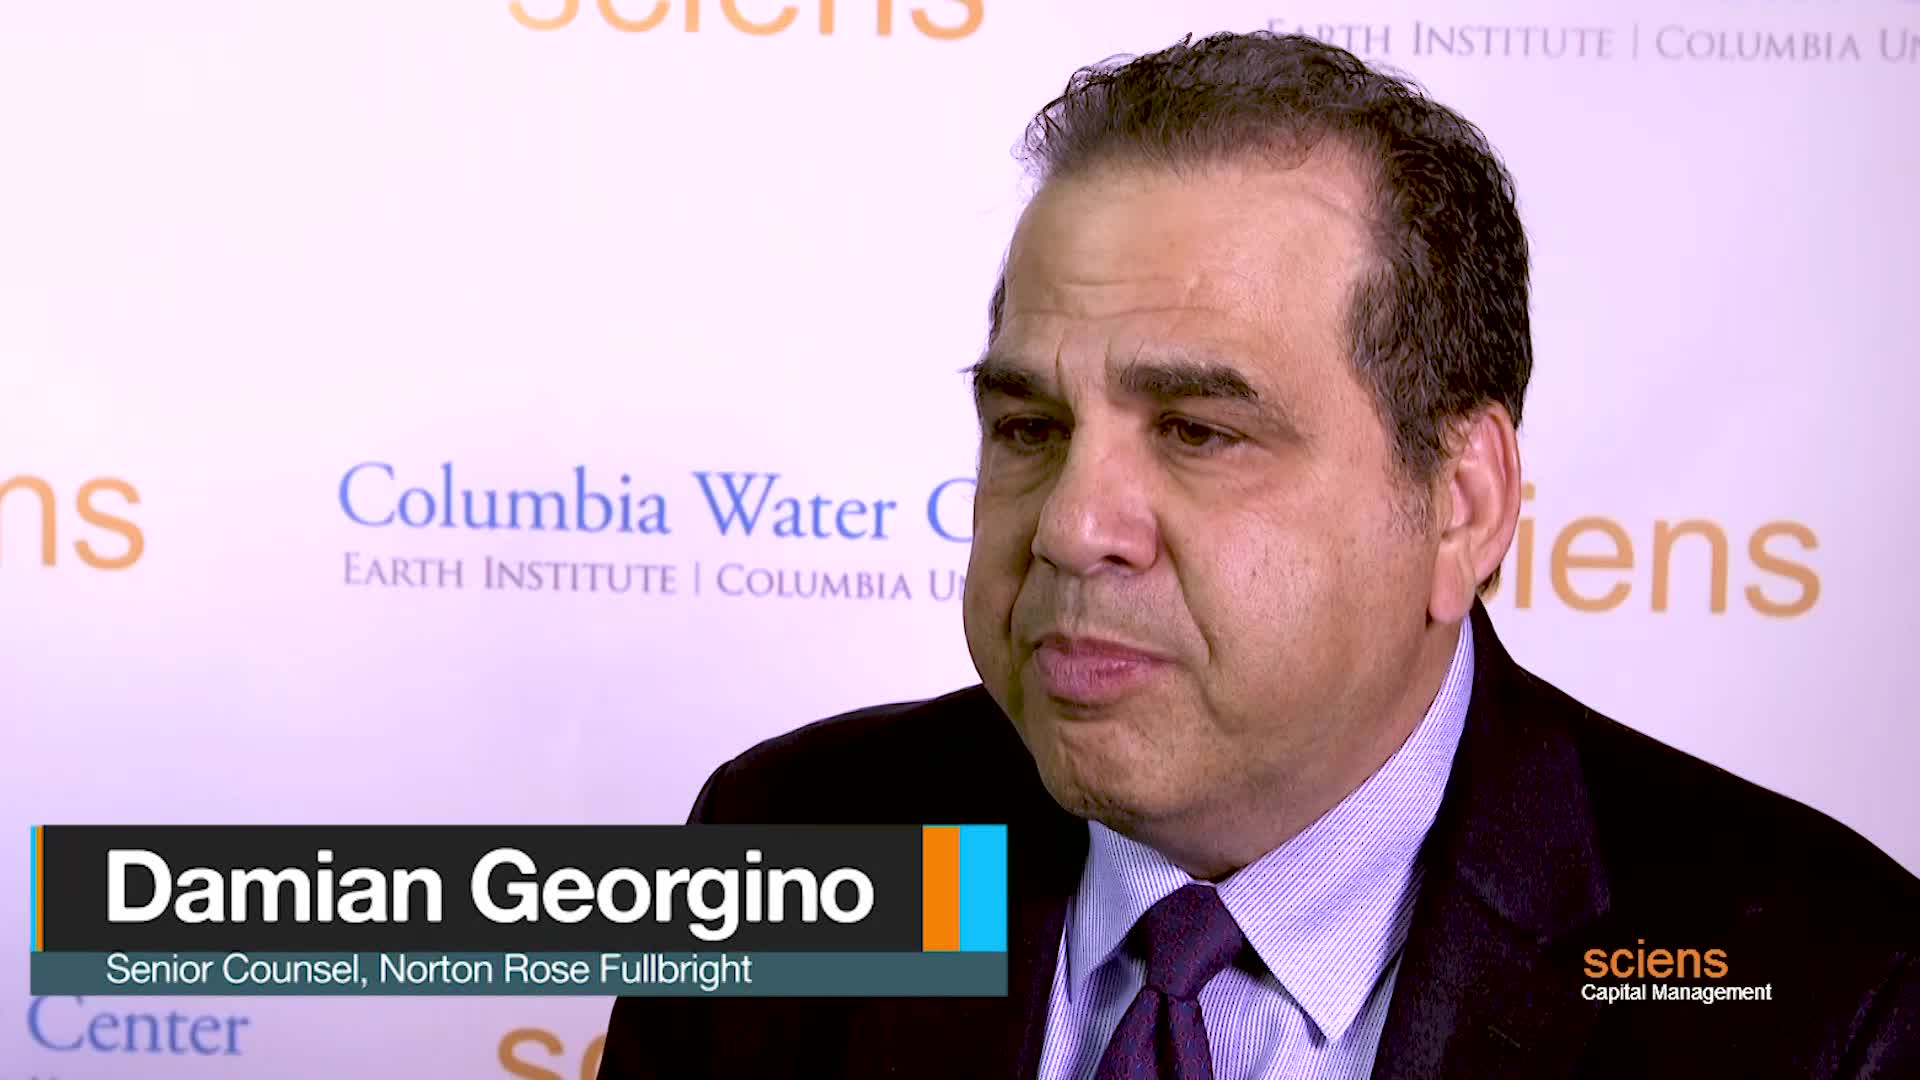 New York lawyer discusses global water and wastewater transactions and financings at Columbia University Conference